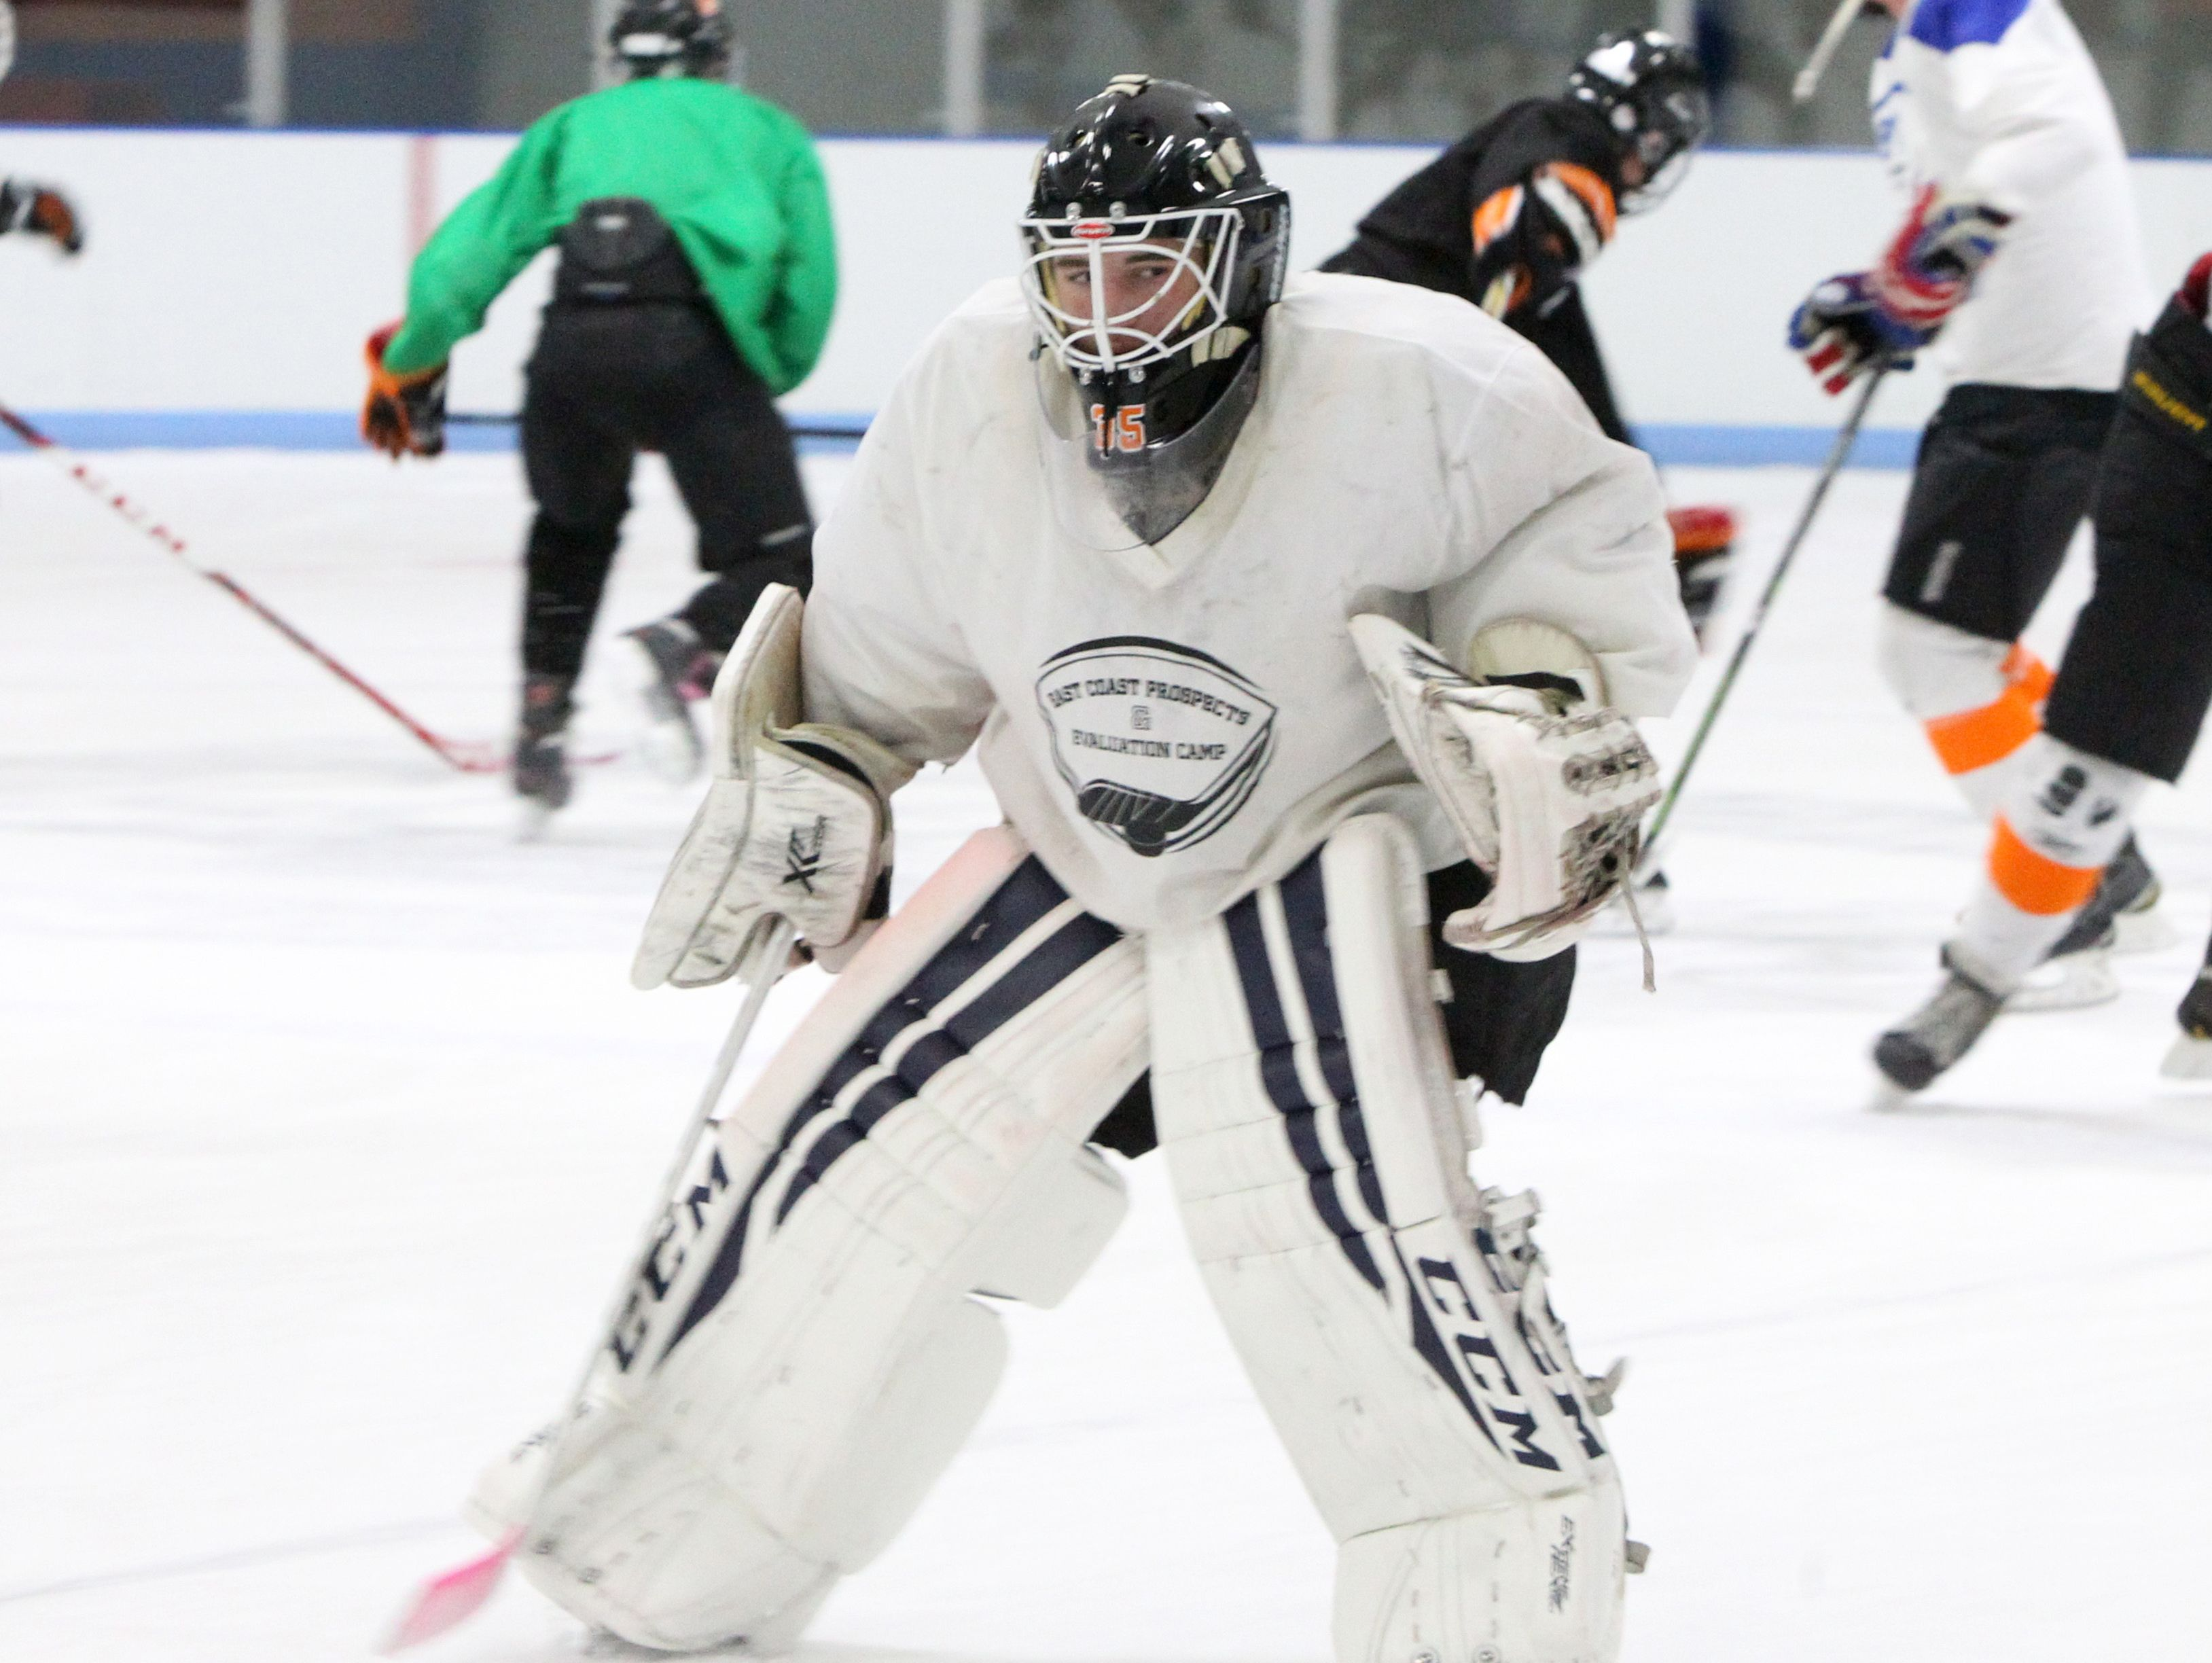 Mamaroneck hockey goalie Tommy Spero during a practice at Hommocks ice rink Nov. 9, 2016.